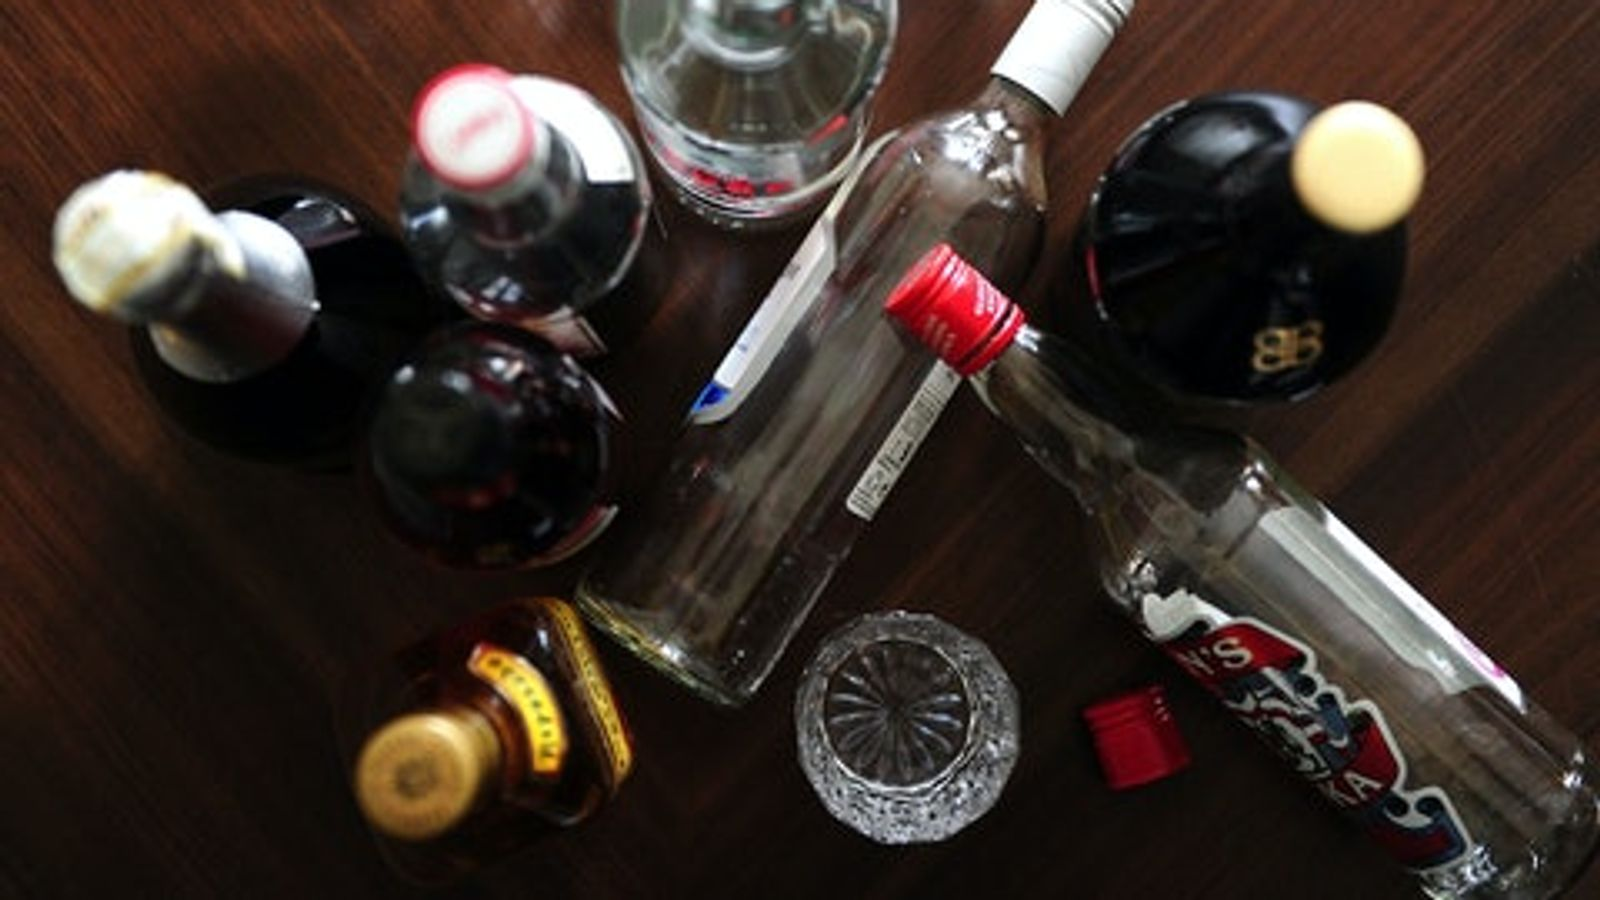 COVID 'the straw that broke the camel's back': Big increase in alcoholic liver disease deaths during pandemic